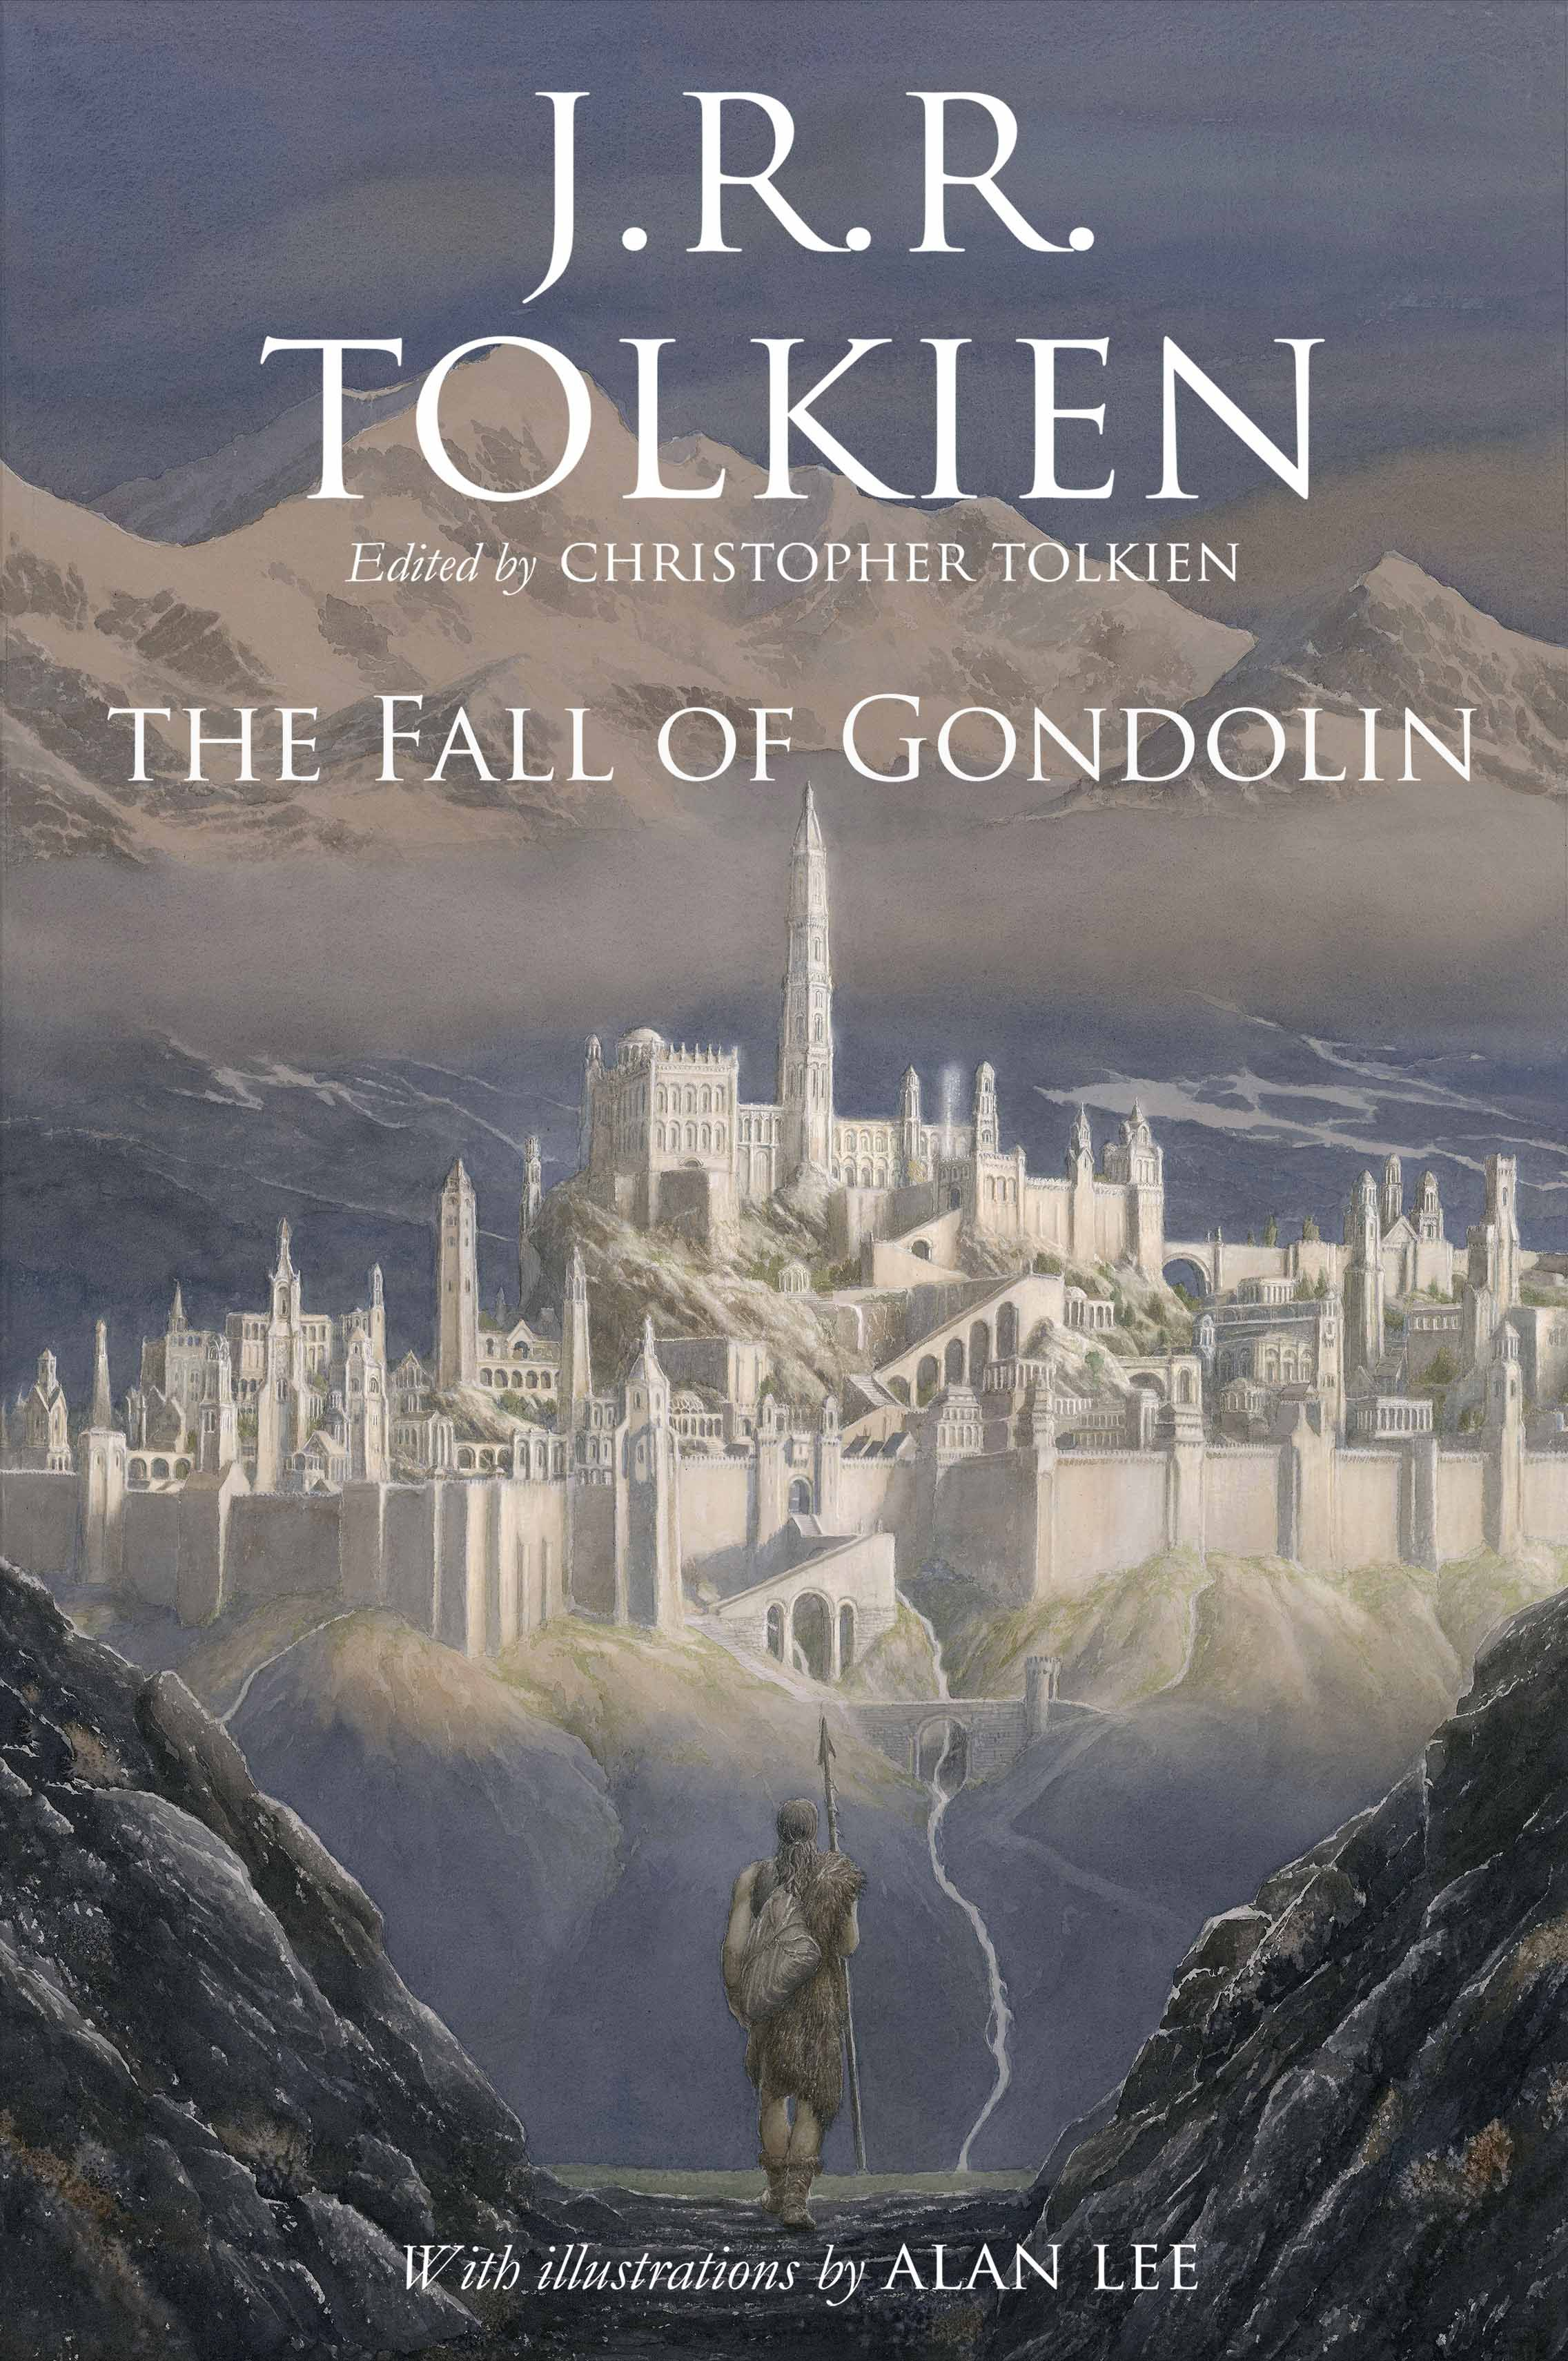 The Fall Of Gondolin So Excited For This To Come Out Tolkien Books Fantasy Books Middle Earth Books